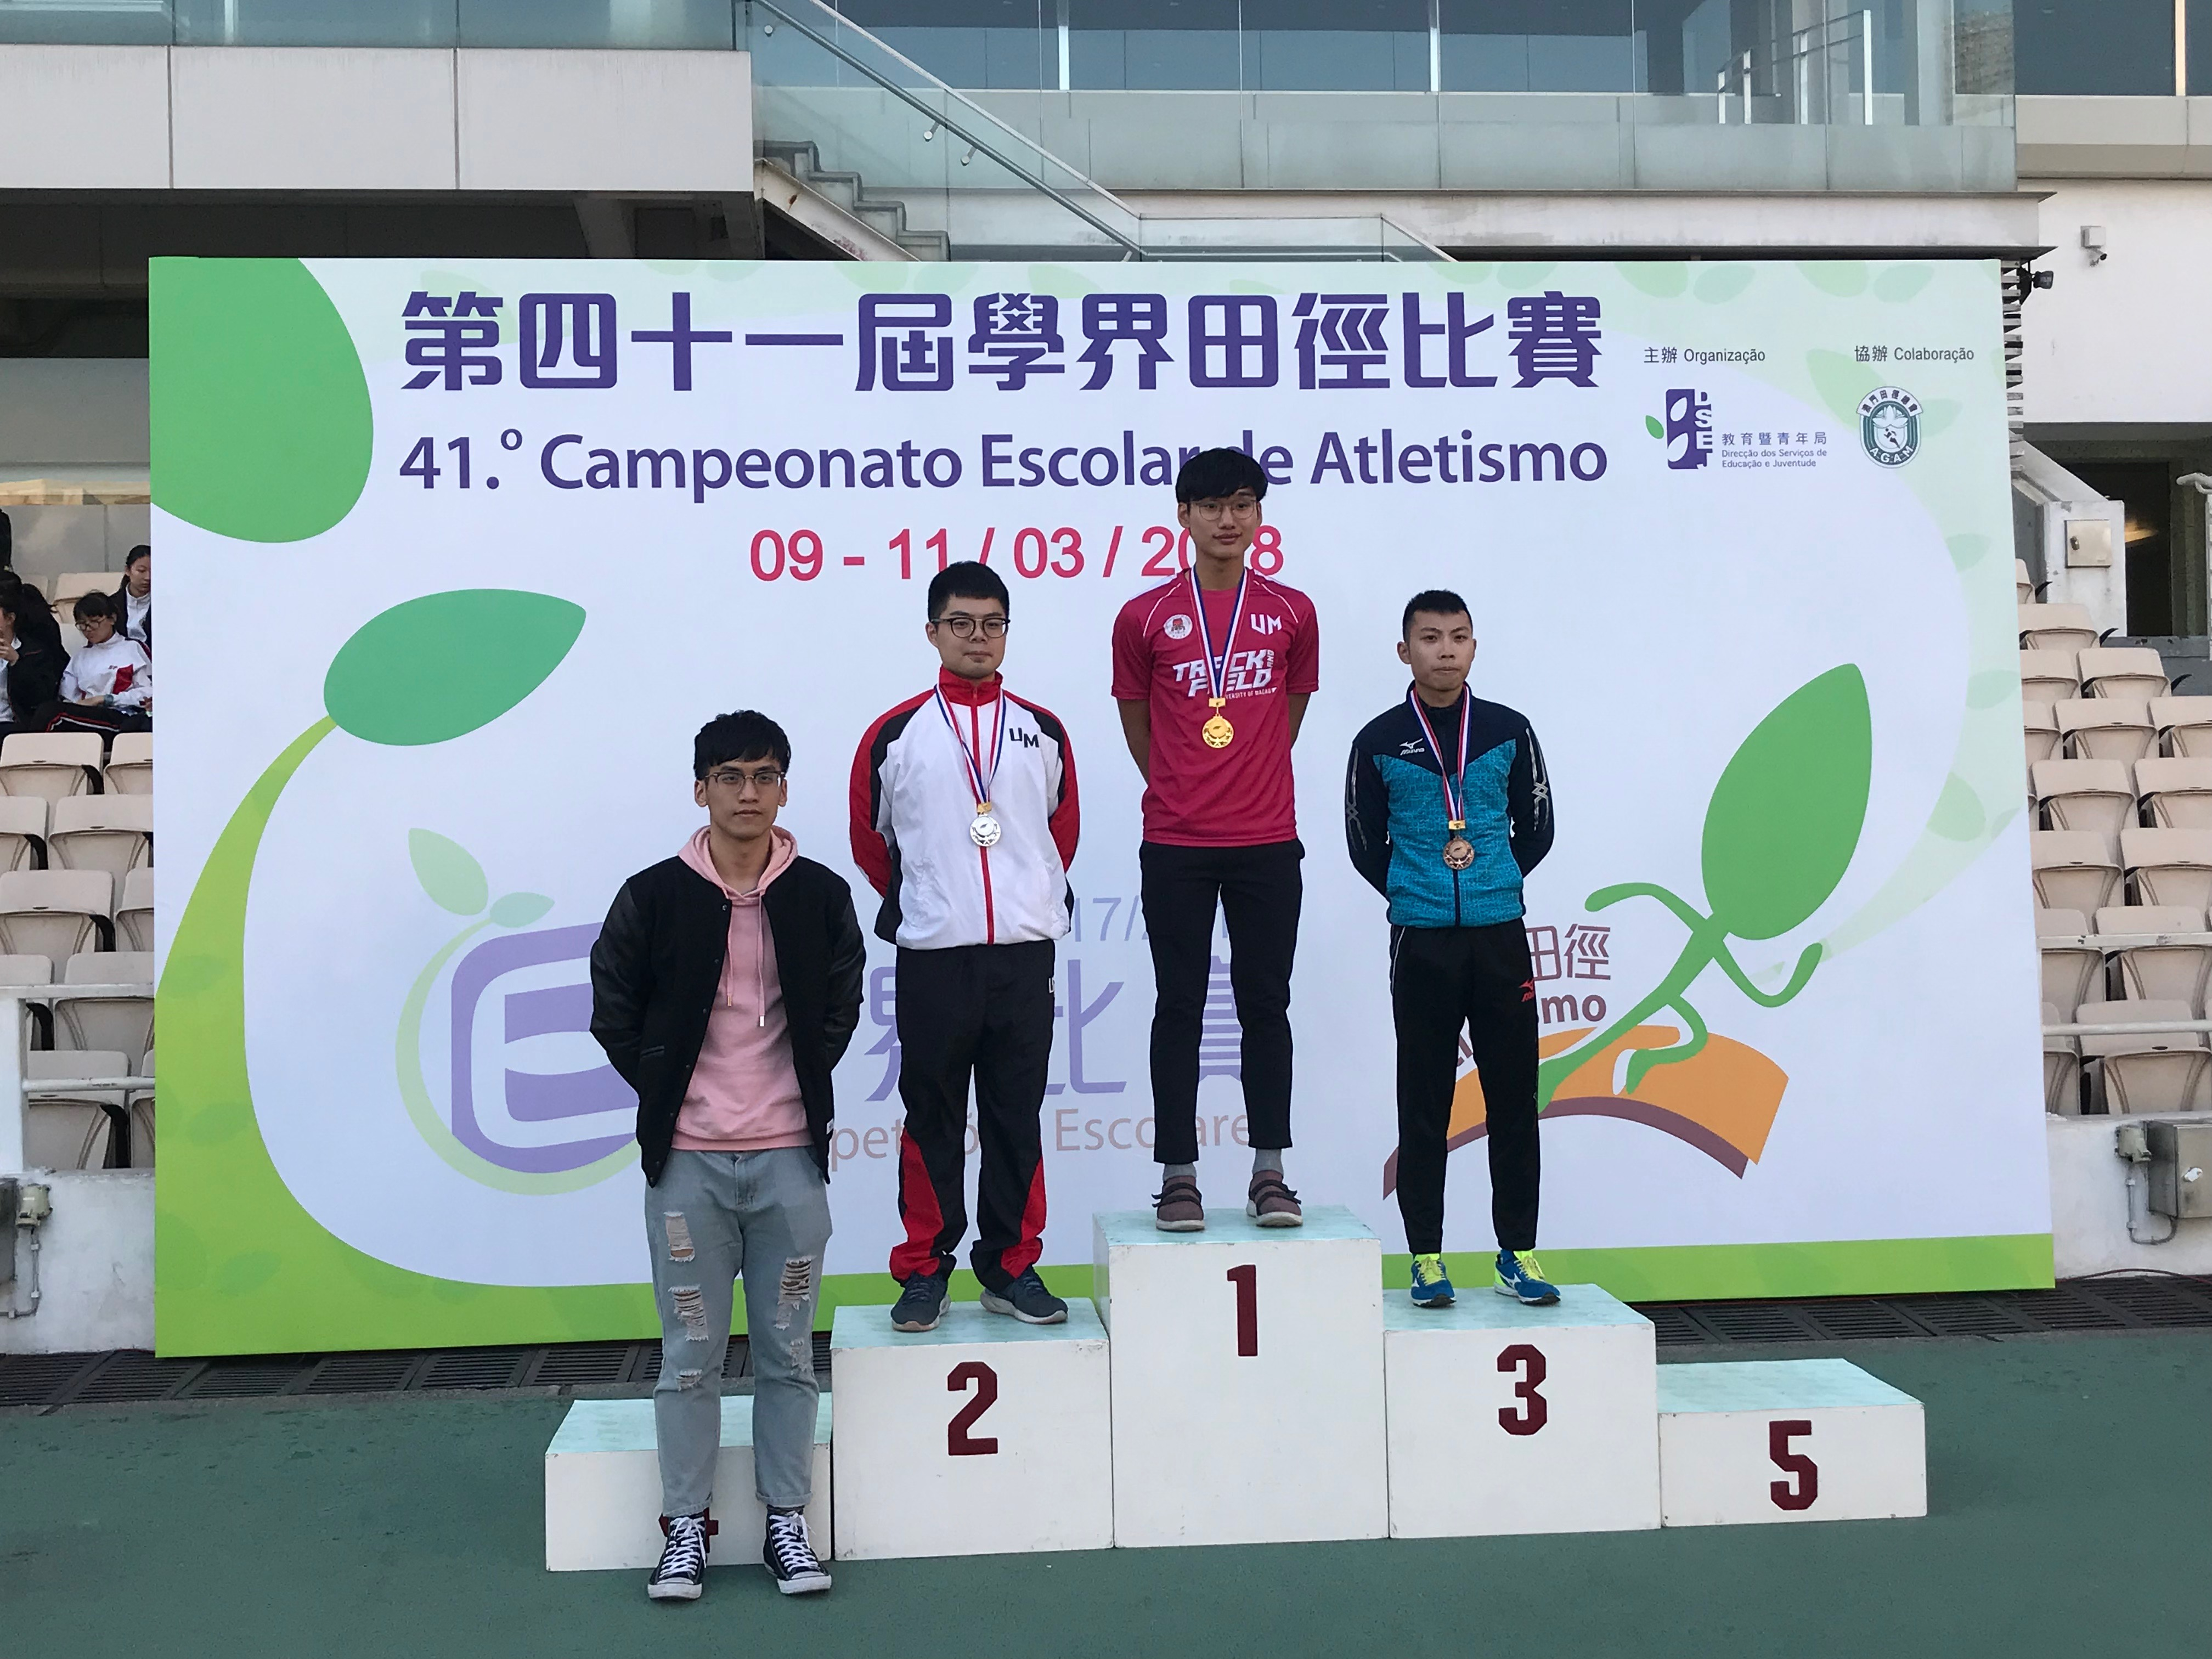 Wong Chak Hoi receives gold medals in the men's discus throw category and javelin category